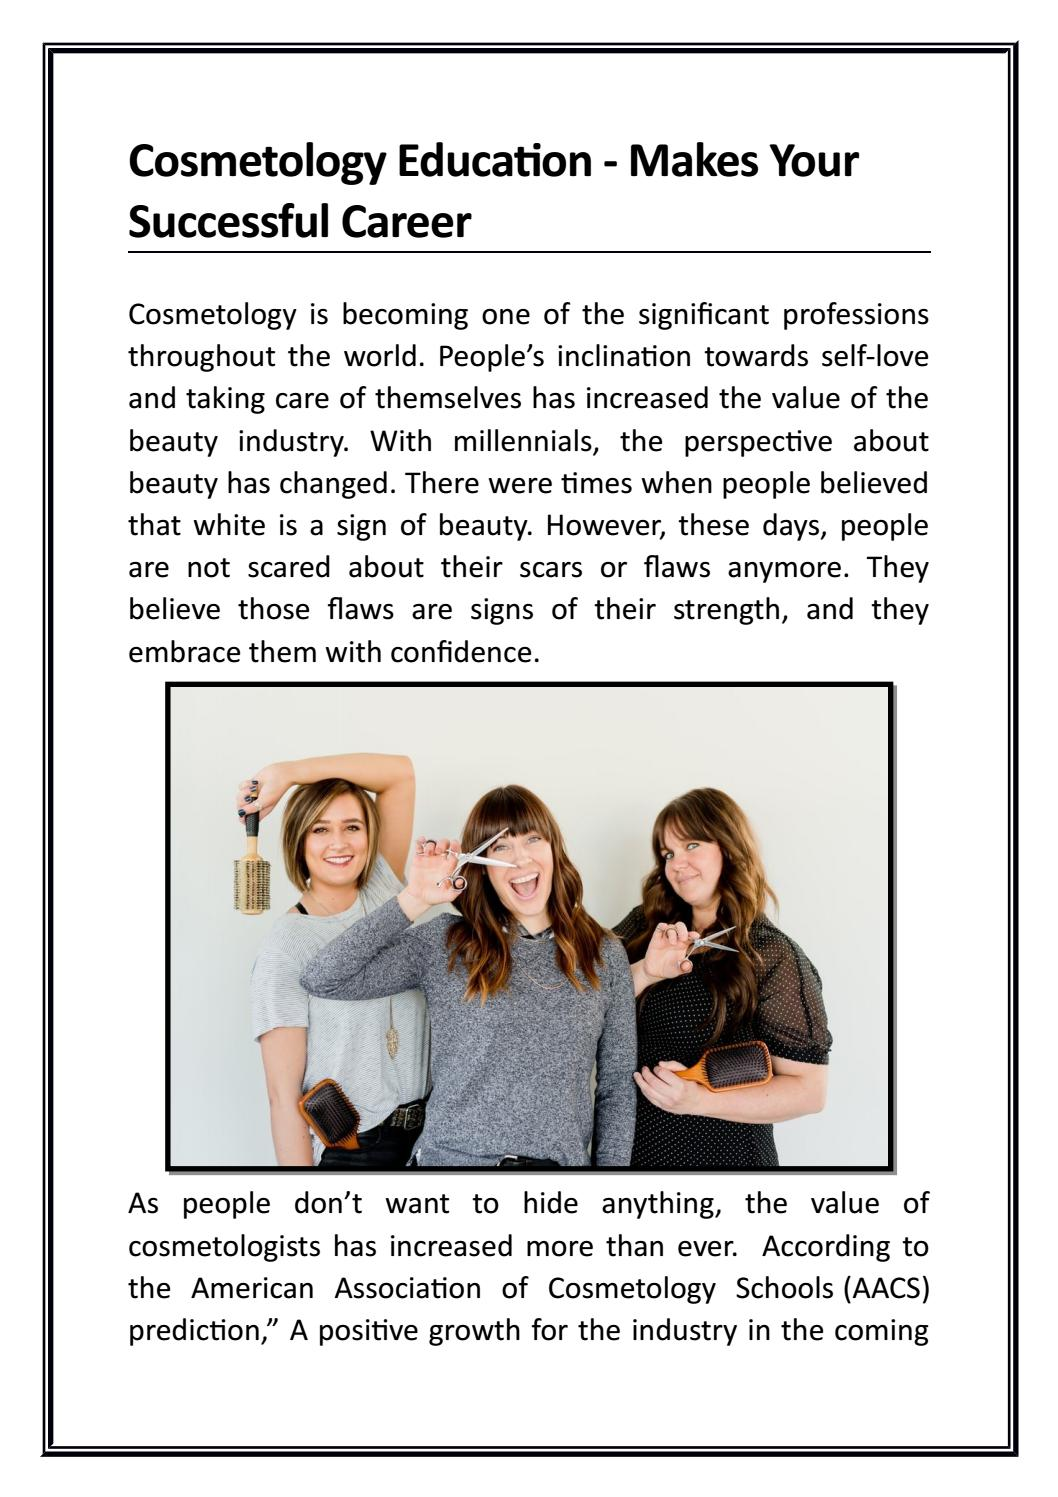 Cosmetology Education - Makes Your Successful Career